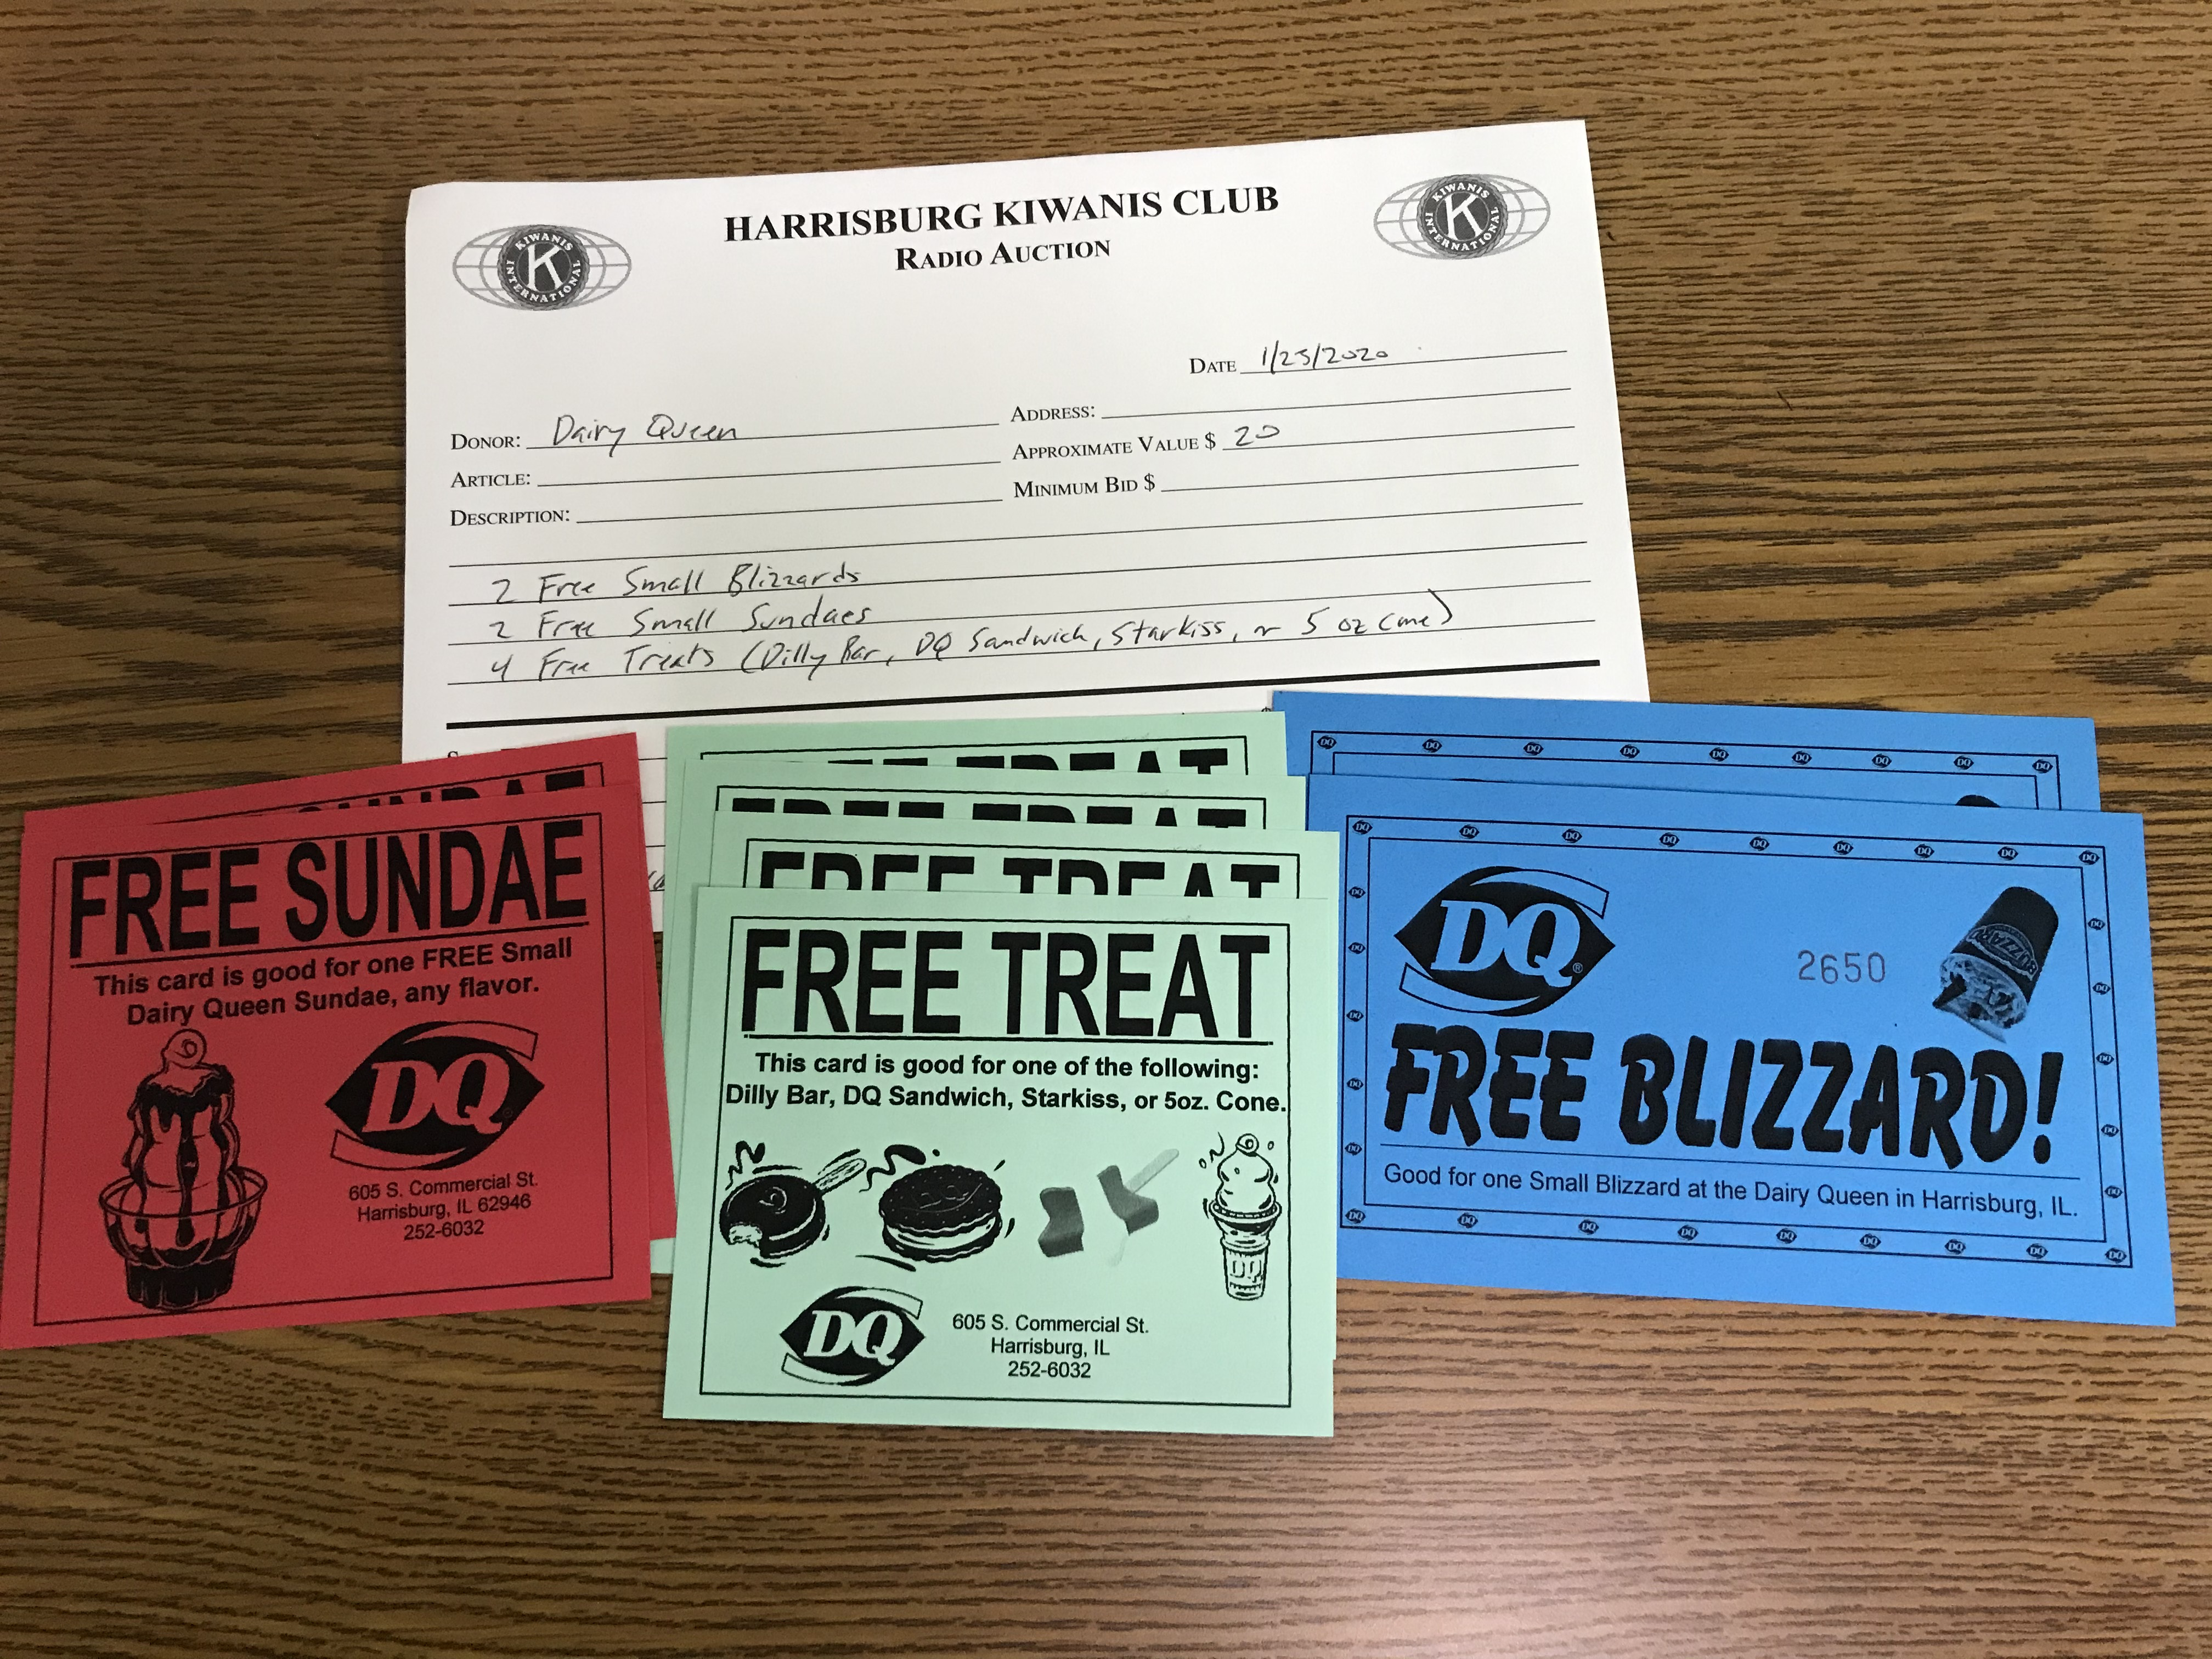 Item 113 - Dairy Queen 2 Free Small Blizzards, 2 Free Small Sundaes, 4 Free Treats (Dilly Bar, DQ Sandwich, Starkiss, or 5 oz Cone)